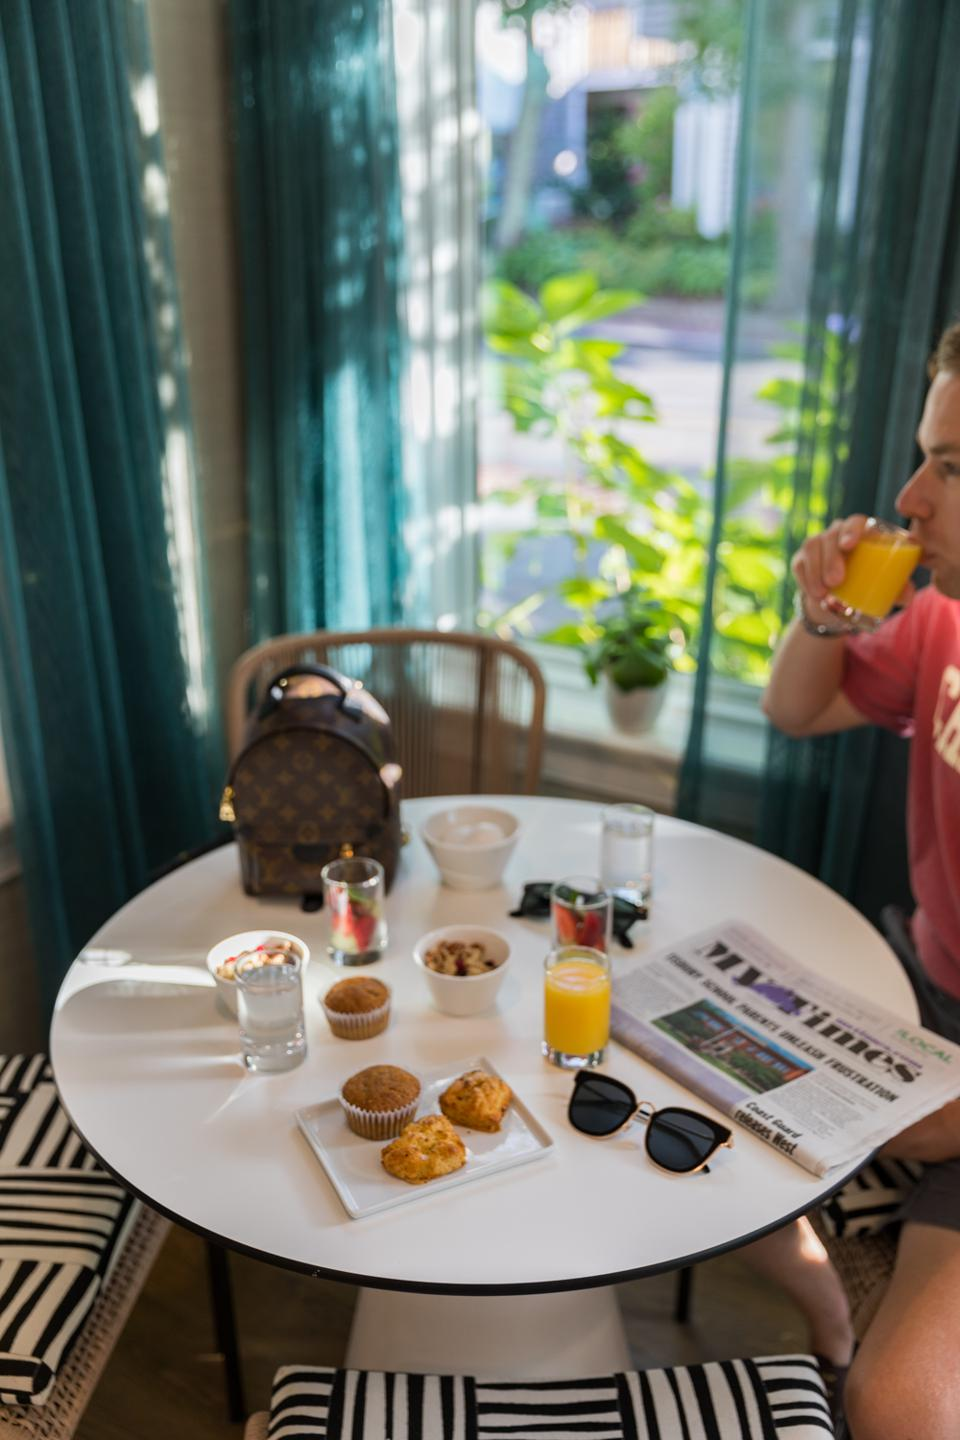 EDGARTOWN, MA - The classic Lark Hotels small plates breakfast at the Sydney Hotel on Martha's Vineyard